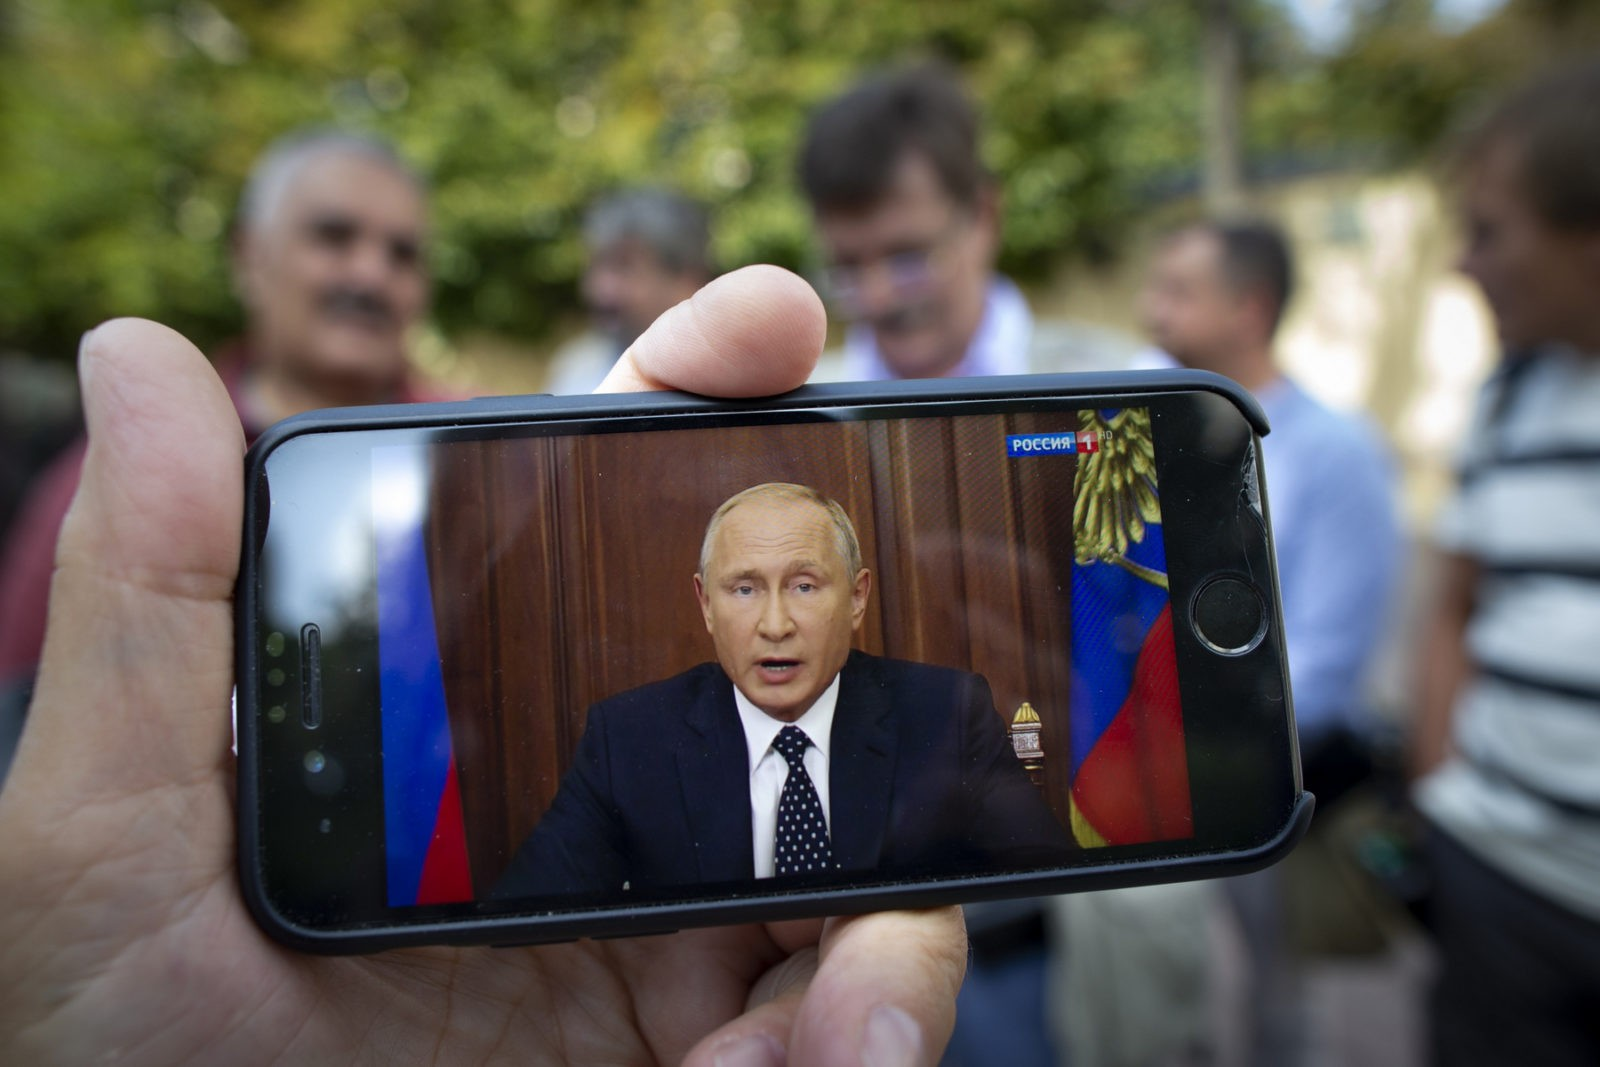 """People stand in a street in Moscow, Russia, Wednesday, Aug. 29, 2018, as Russian President Vladimir Putin addresses on state TV. Putin in a televised address Wednesday said without raising the retirement age Russia's pension system """"would crack and eventually collapse."""" He offered concessions to the reform, saying that women's retirement age should increase from 55 to 60 years, lower than had proposed. (AP Photo/Alexander Zemlianichenko)"""